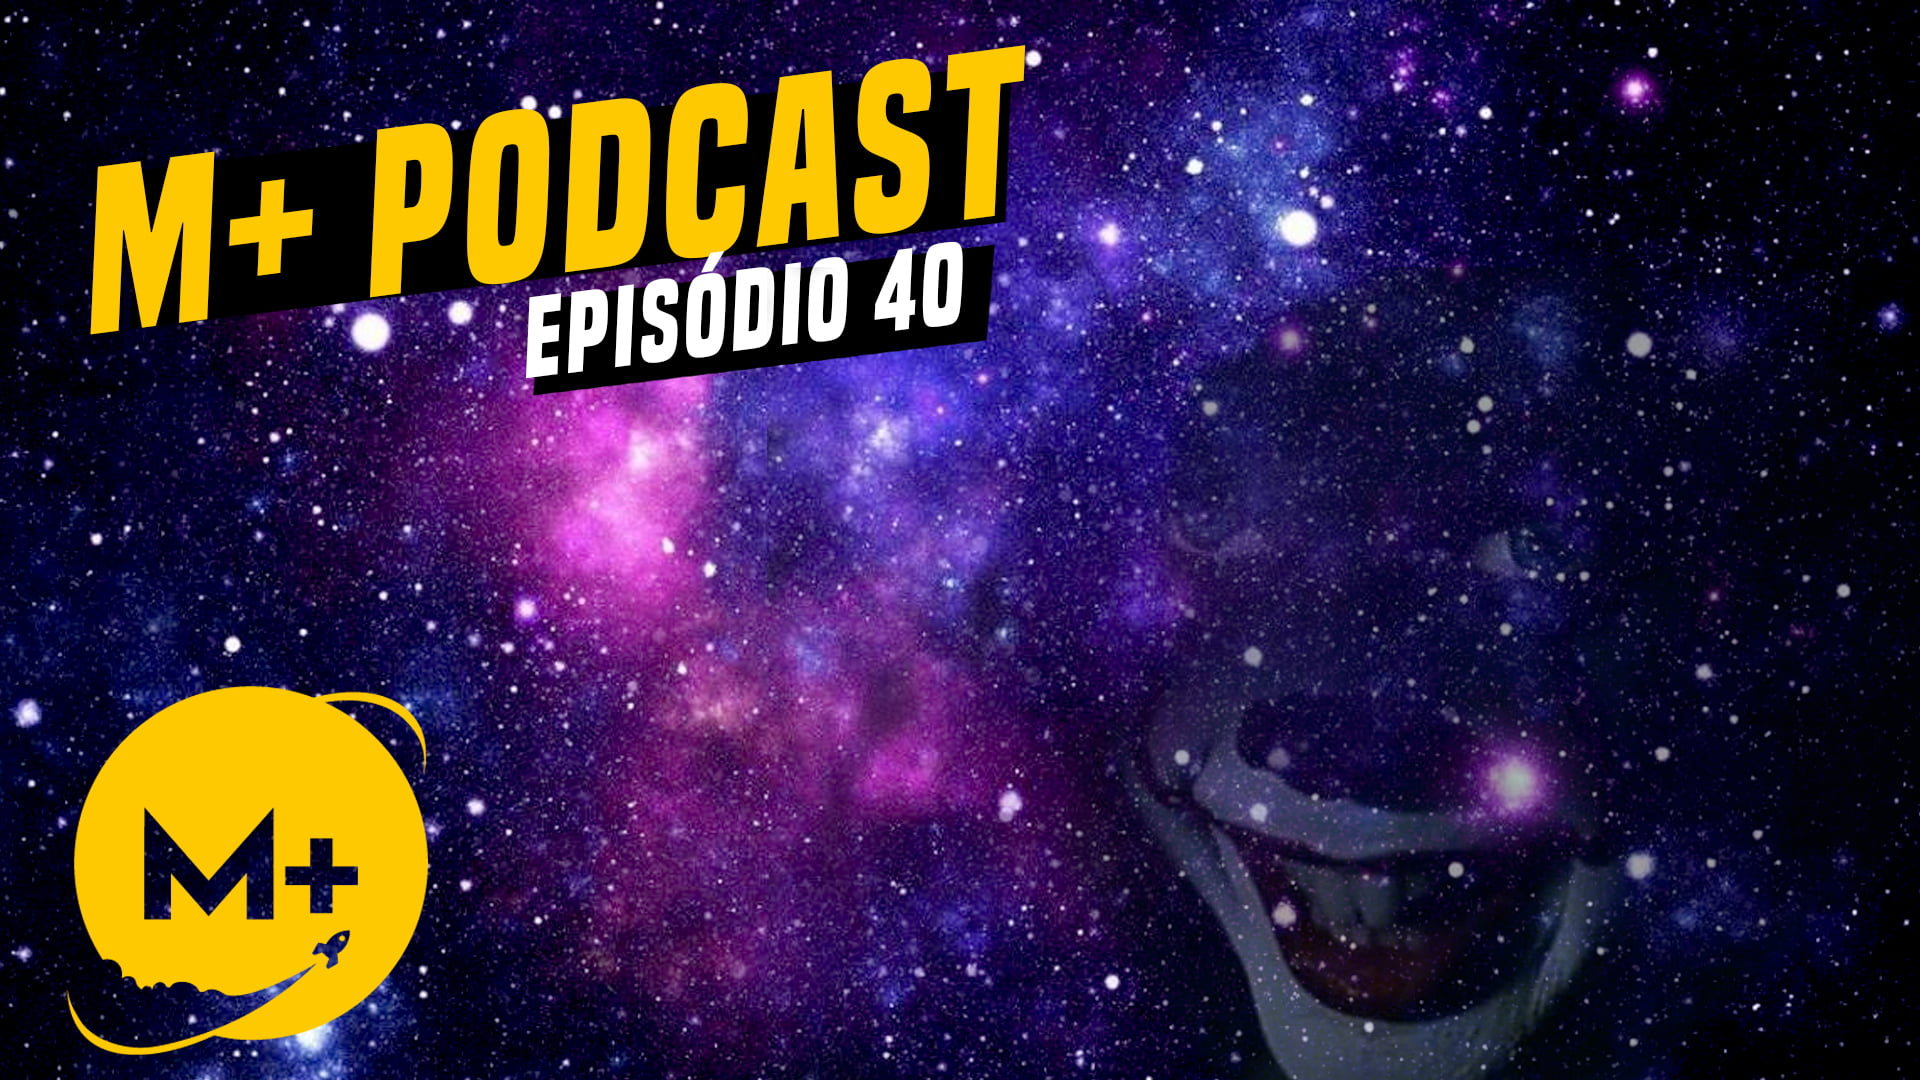 M+ Podcast 40 – Halloween 2020